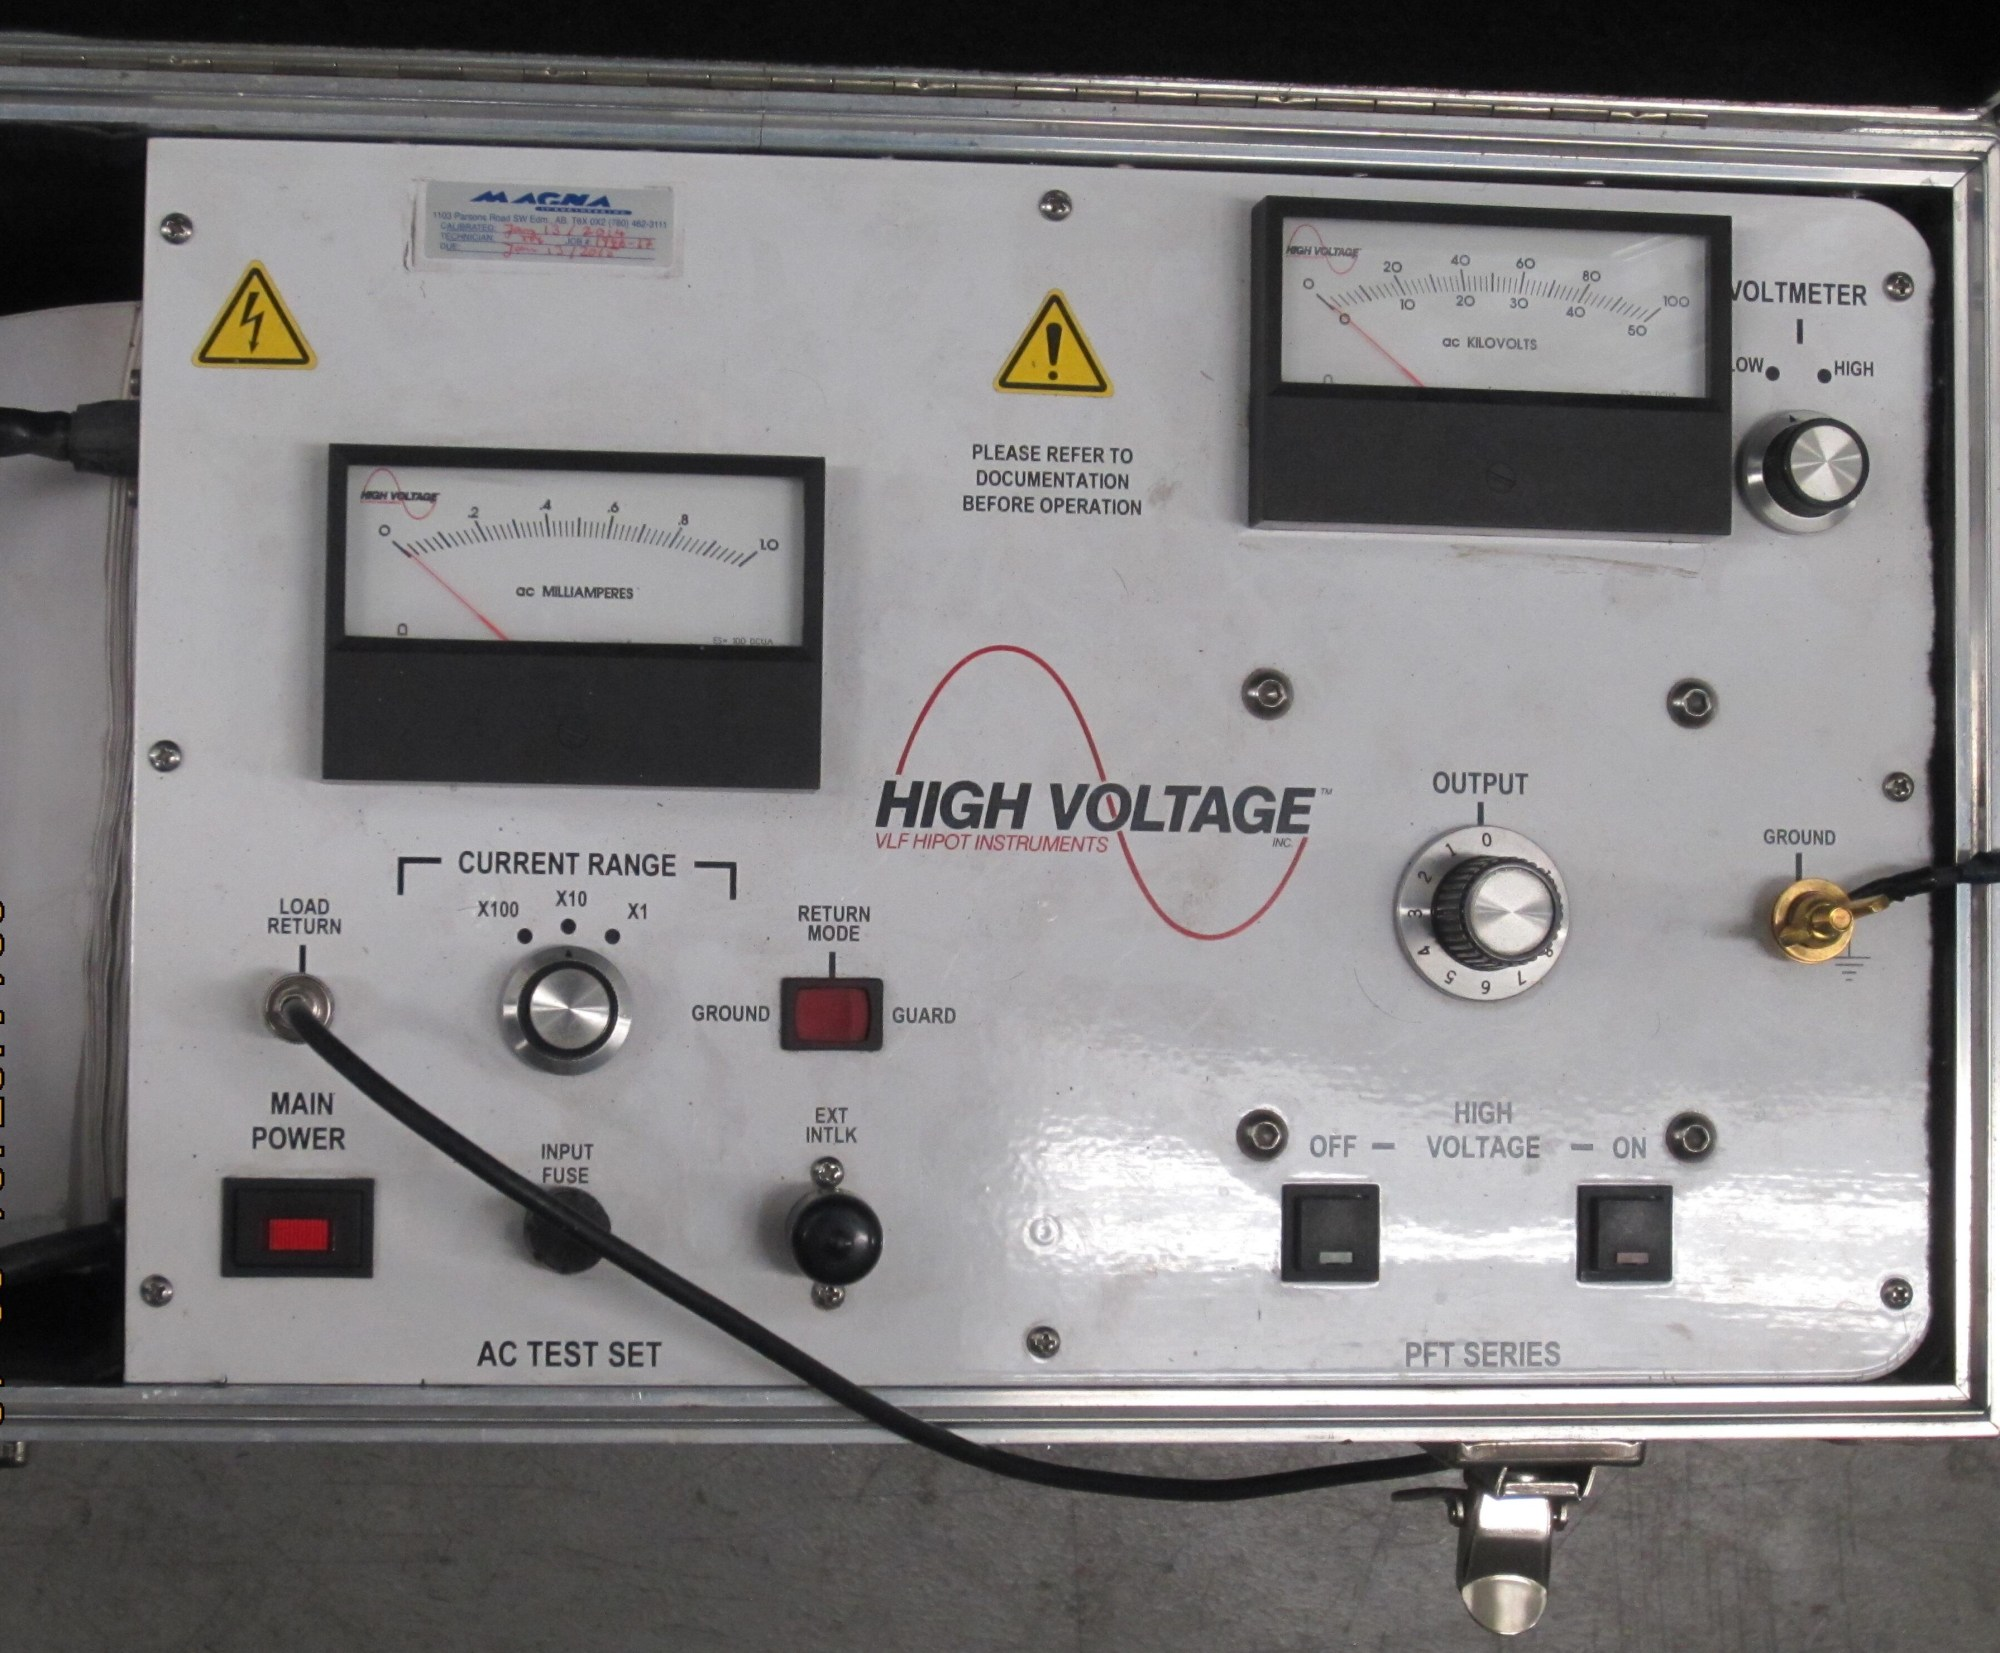 hight resolution of control panel of a portable high voltage hipot tester this instrument can test up to 100 kv dc